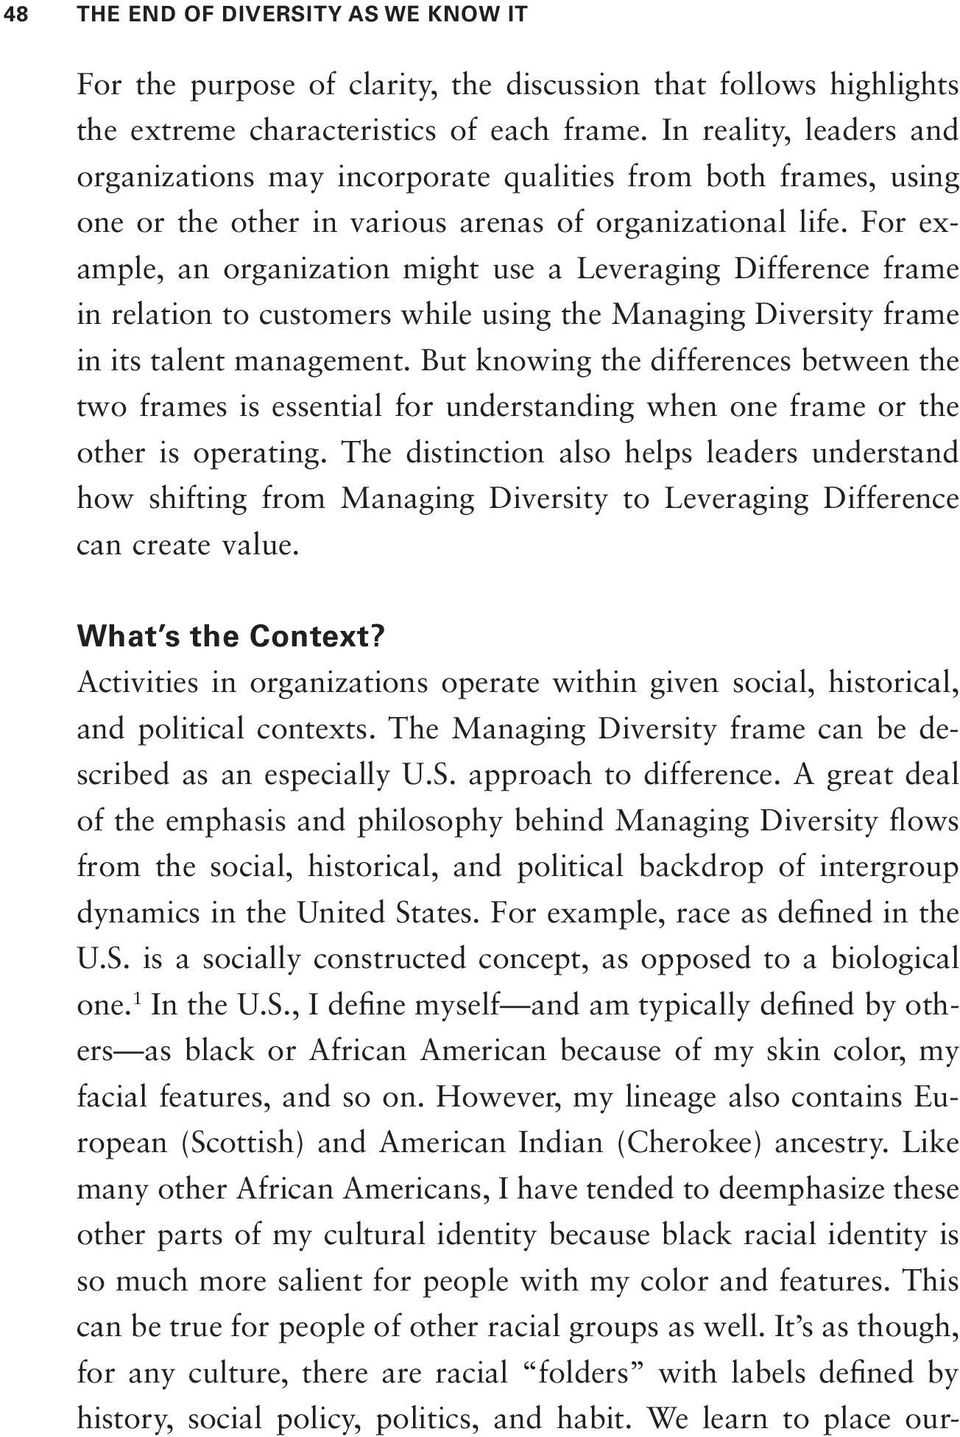 For example, an organization might use a Leveraging Difference frame in relation to customers while using the Managing Diversity frame in its talent management.